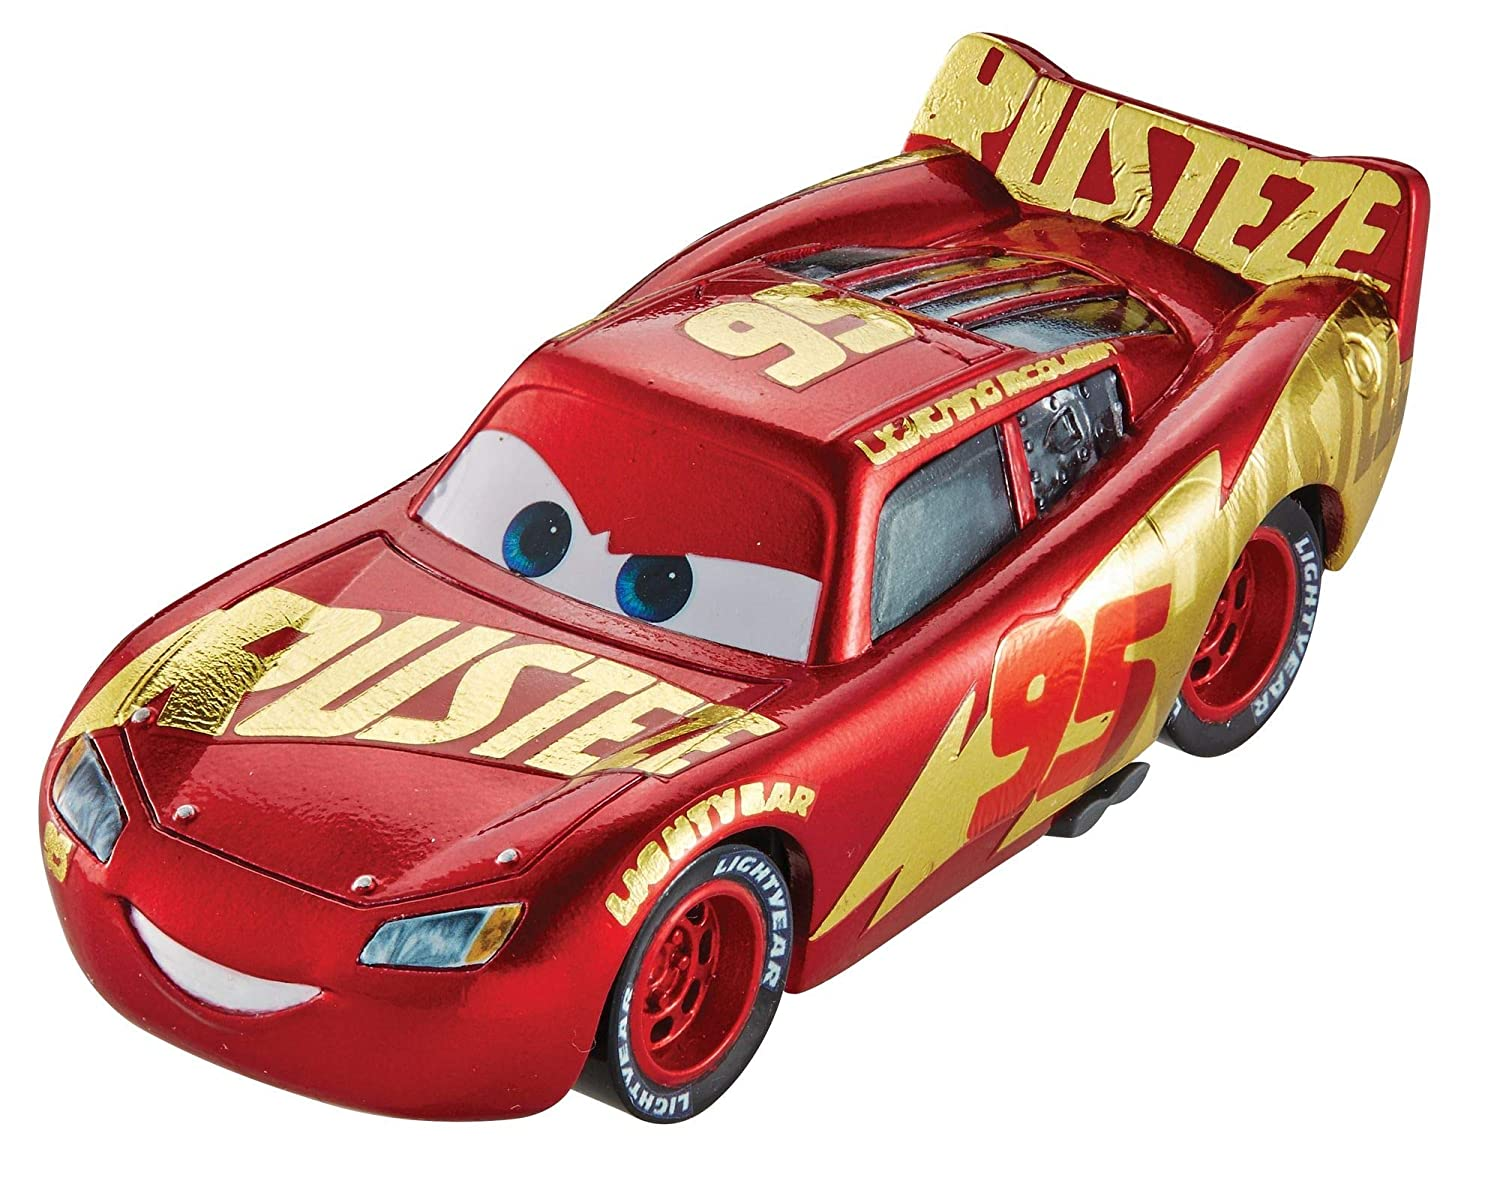 Disney Cars Pixar Die-Cast Lightning McQueen with Wrap Vehicle Mattel DXV45